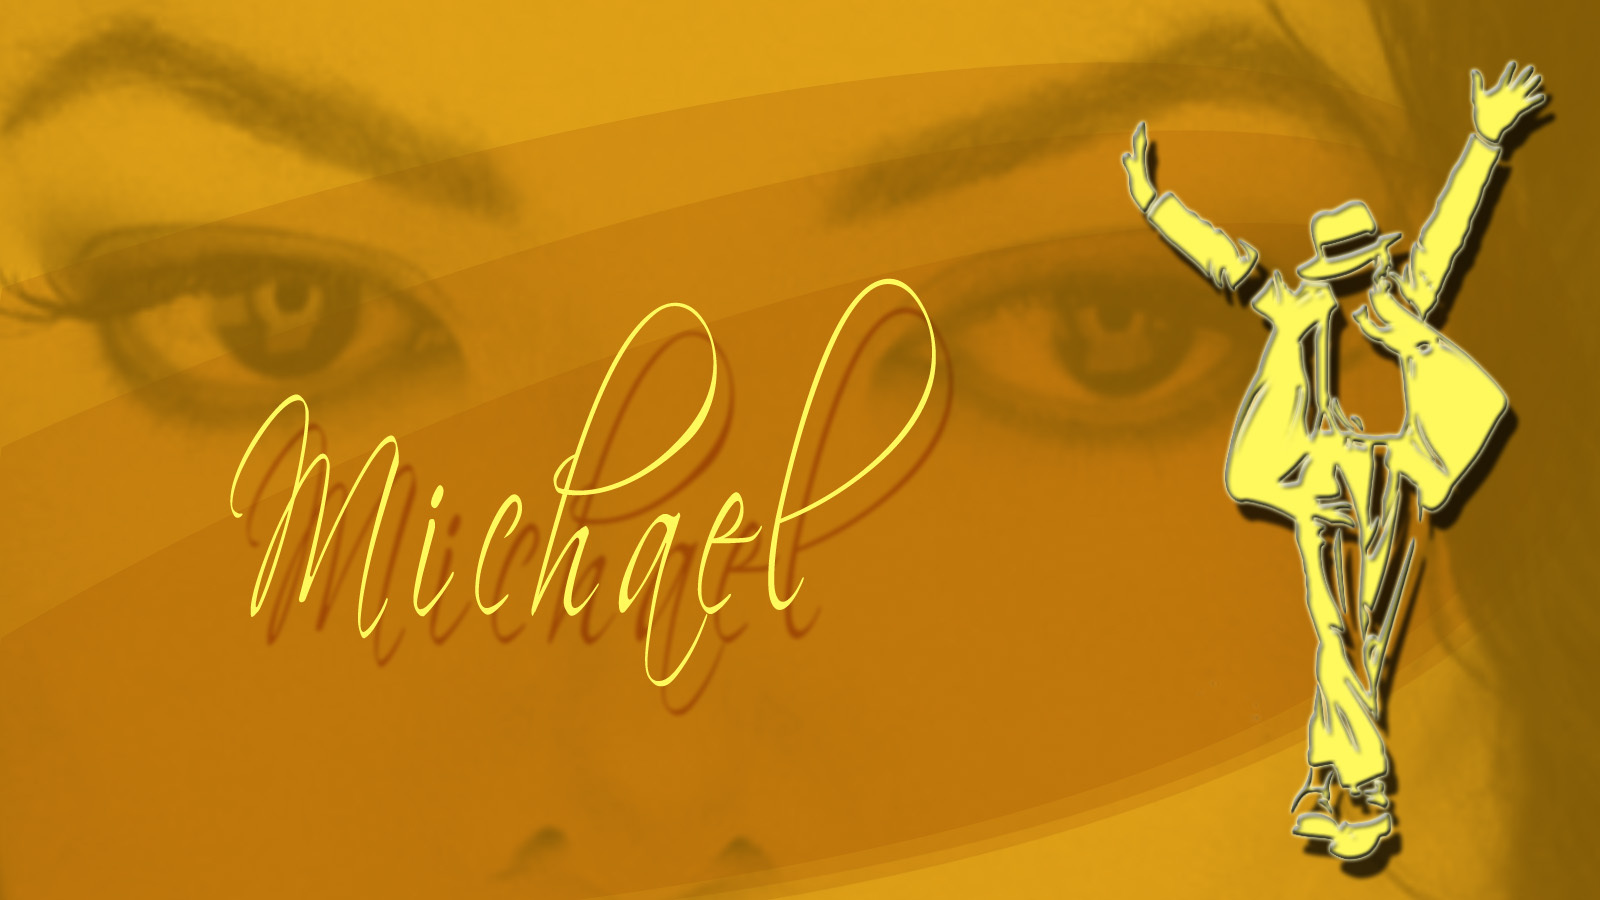 Cómo hacer Wallpapers  MJ-Wallpaper-michael-jackson-11130677-1600-900